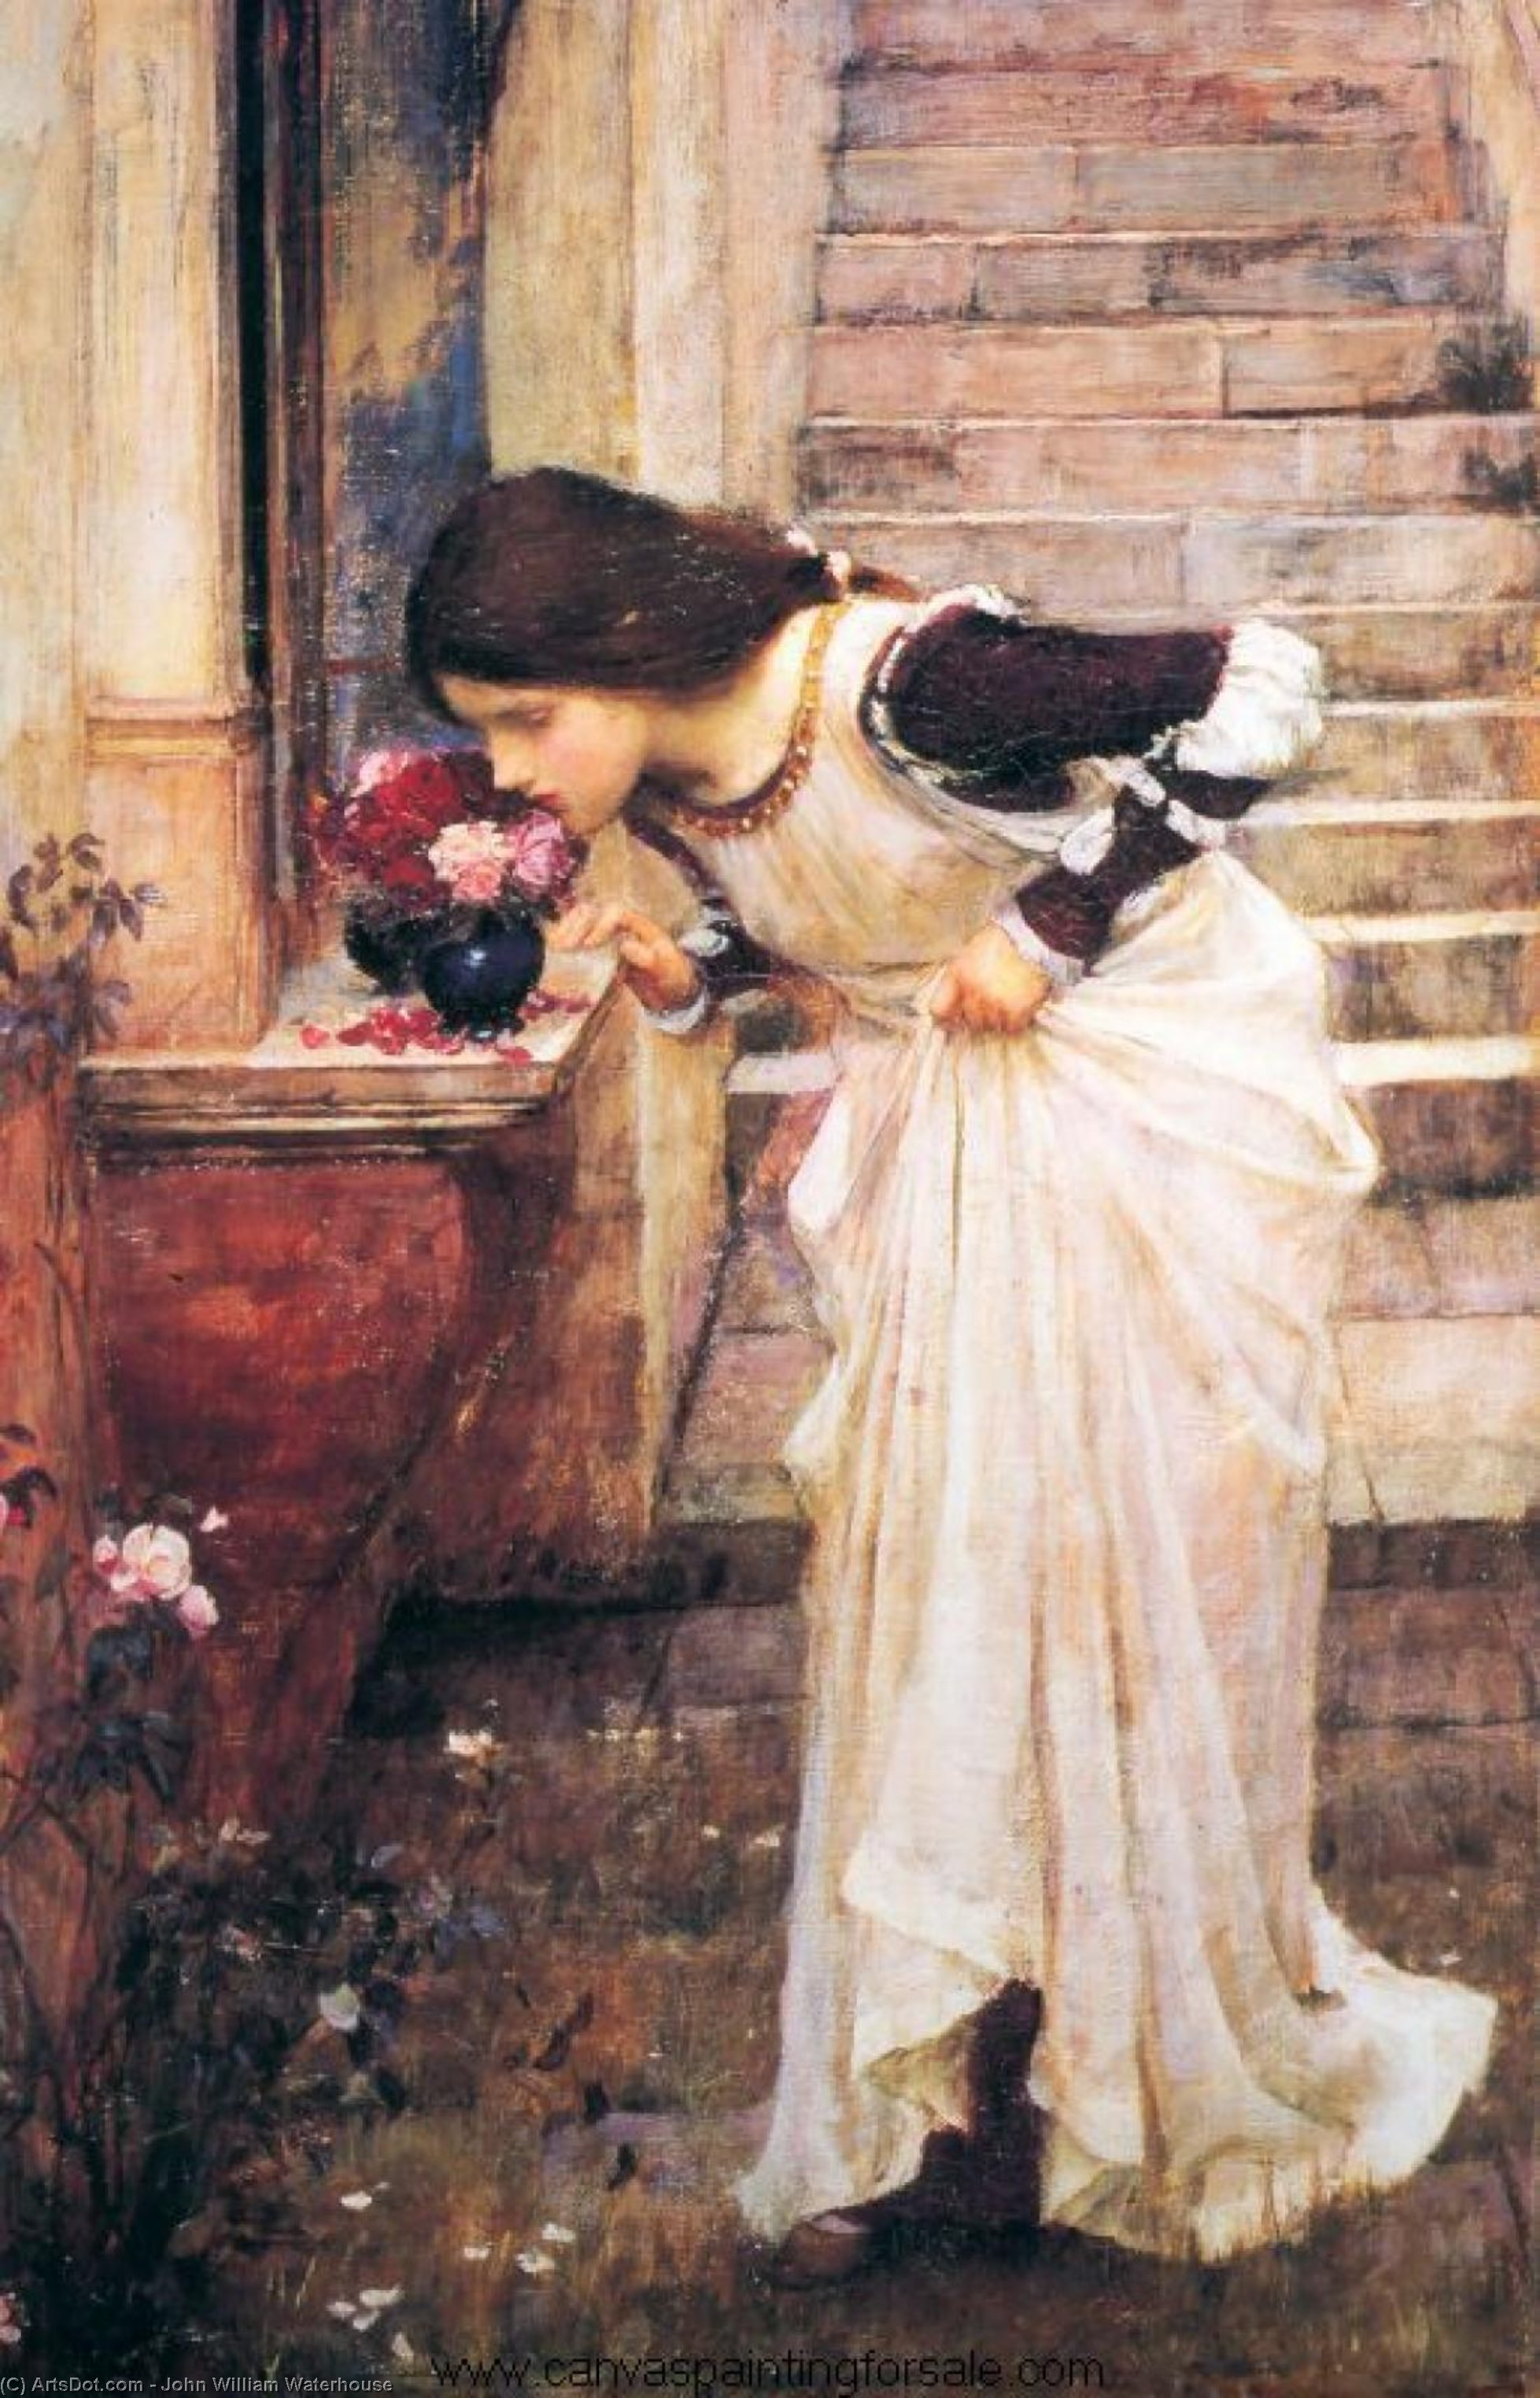 Wikioo.org - The Encyclopedia of Fine Arts - Painting, Artwork by John William Waterhouse - At the Shrine